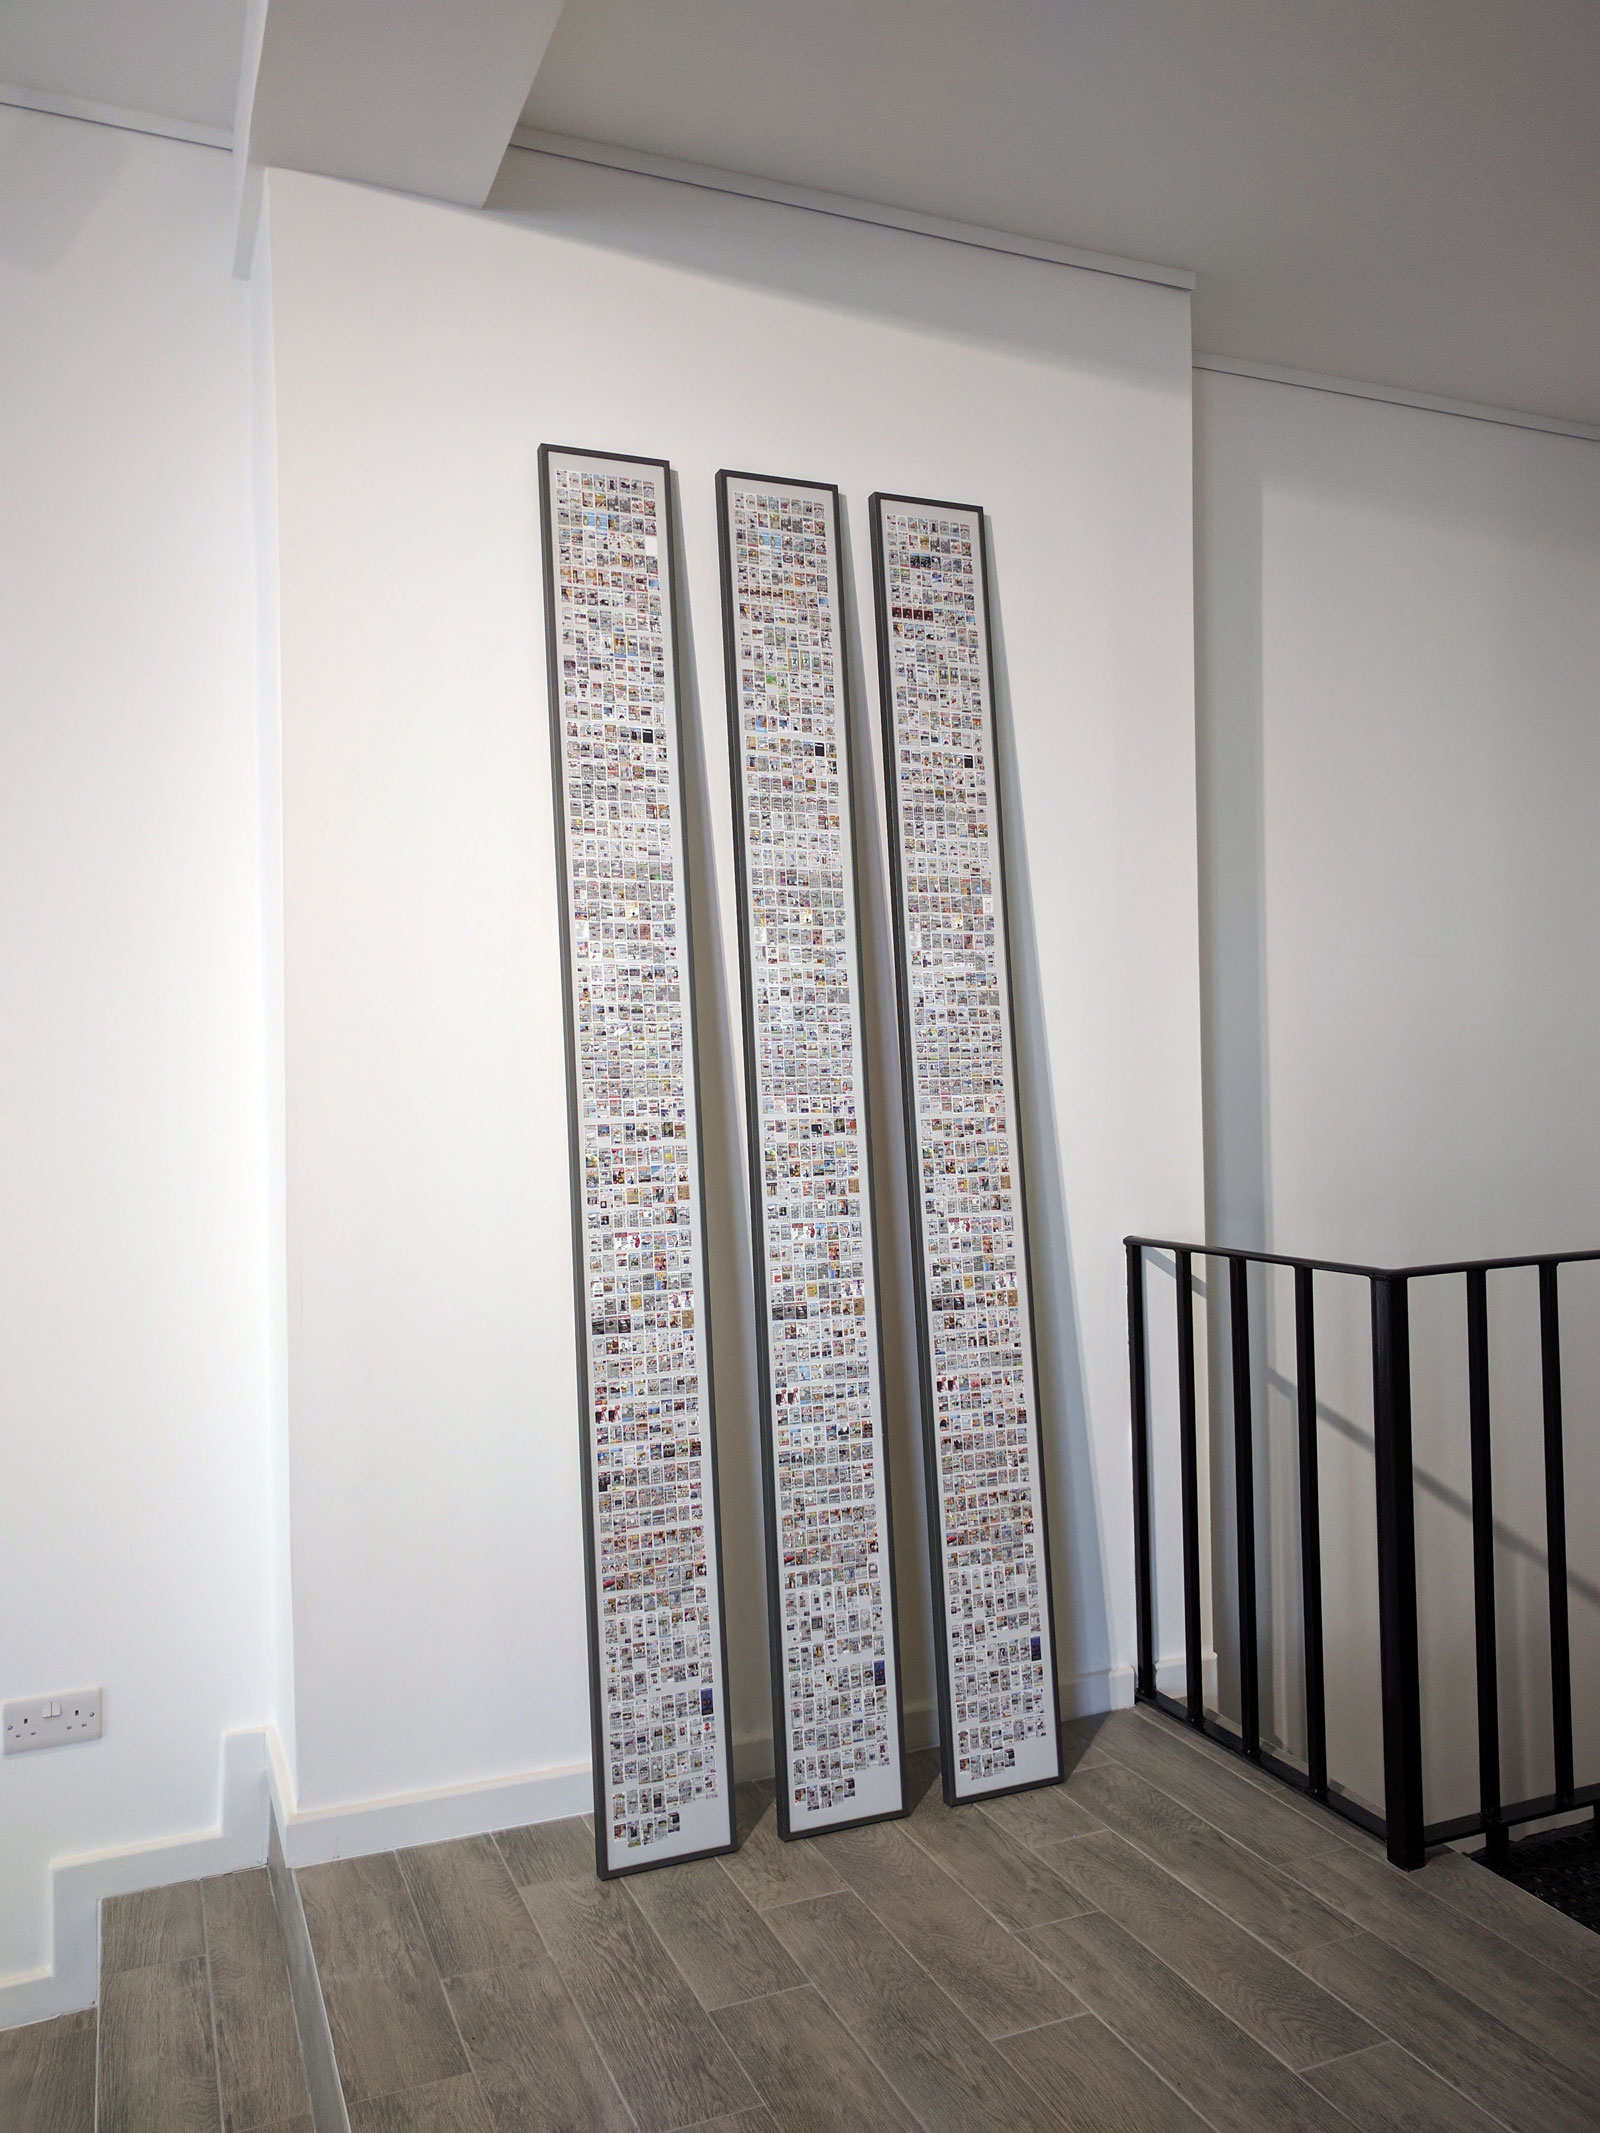 Data Soliloquies, solo exhibition at Argentea Gallery, Birmingham